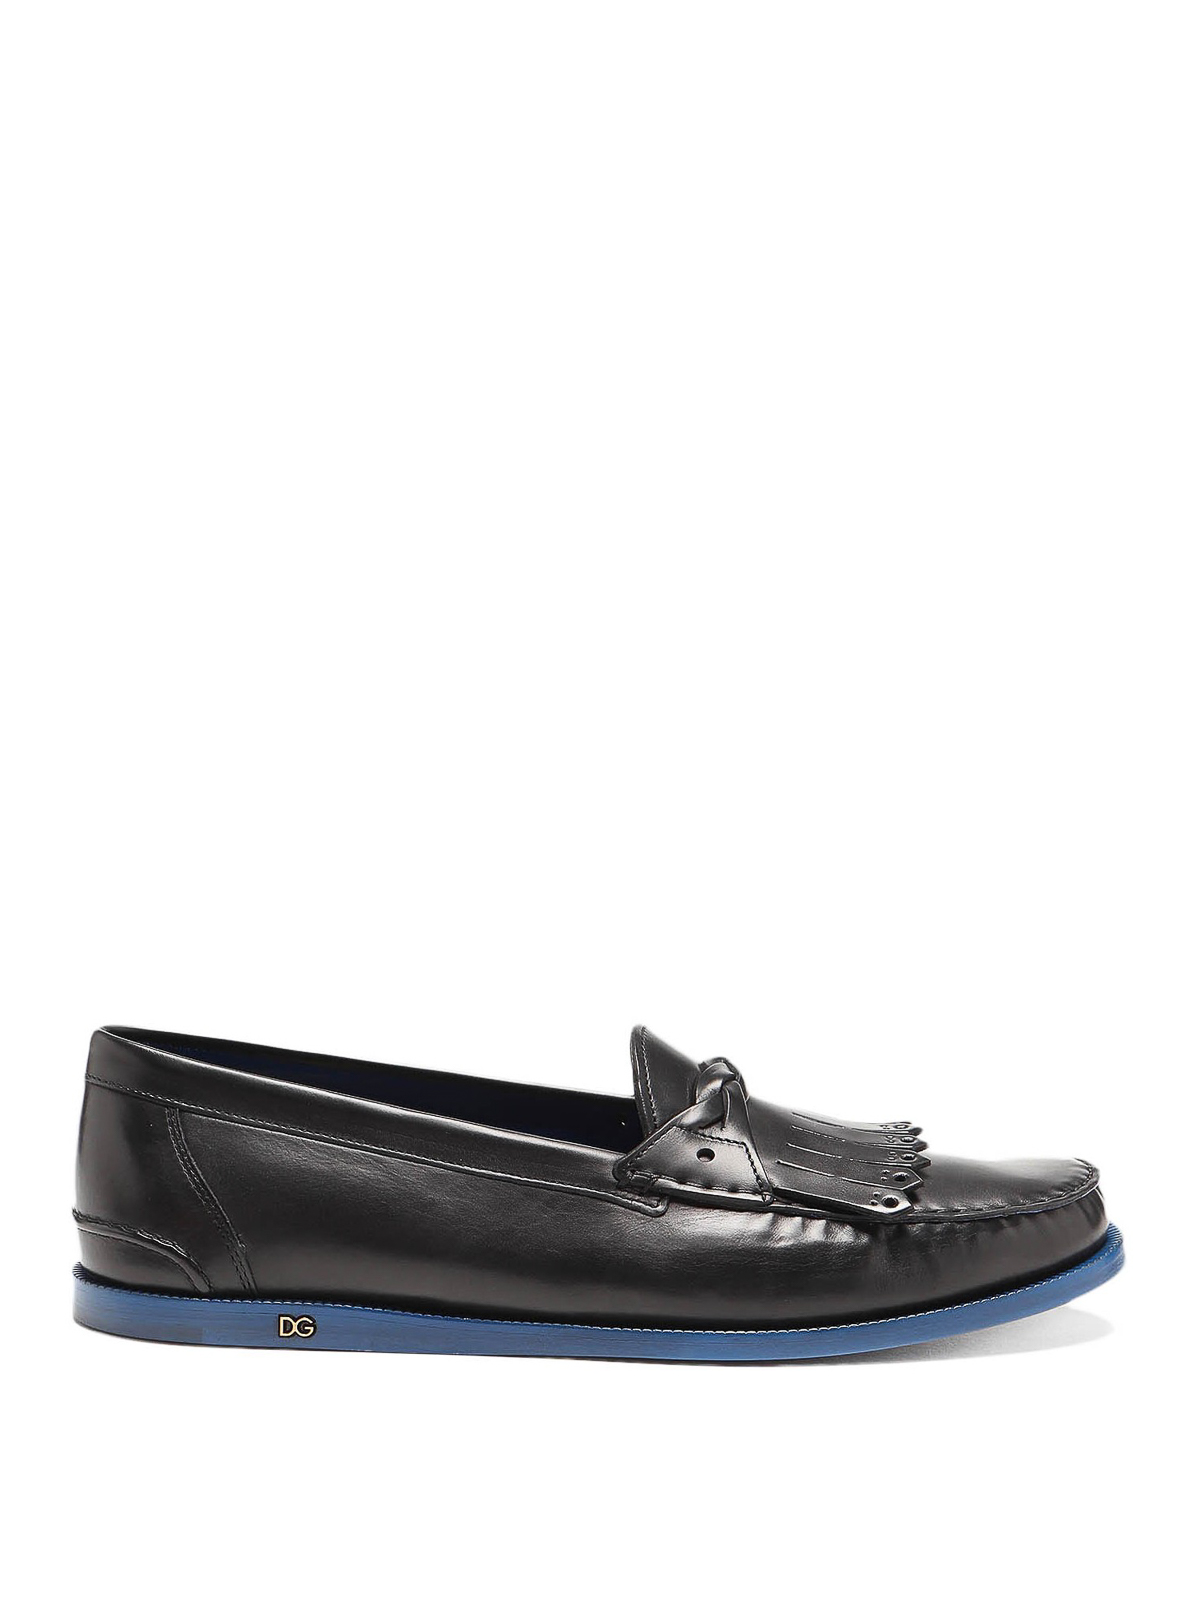 Dolce & Gabbana Loafers BLACK LEATHER LOAFERS